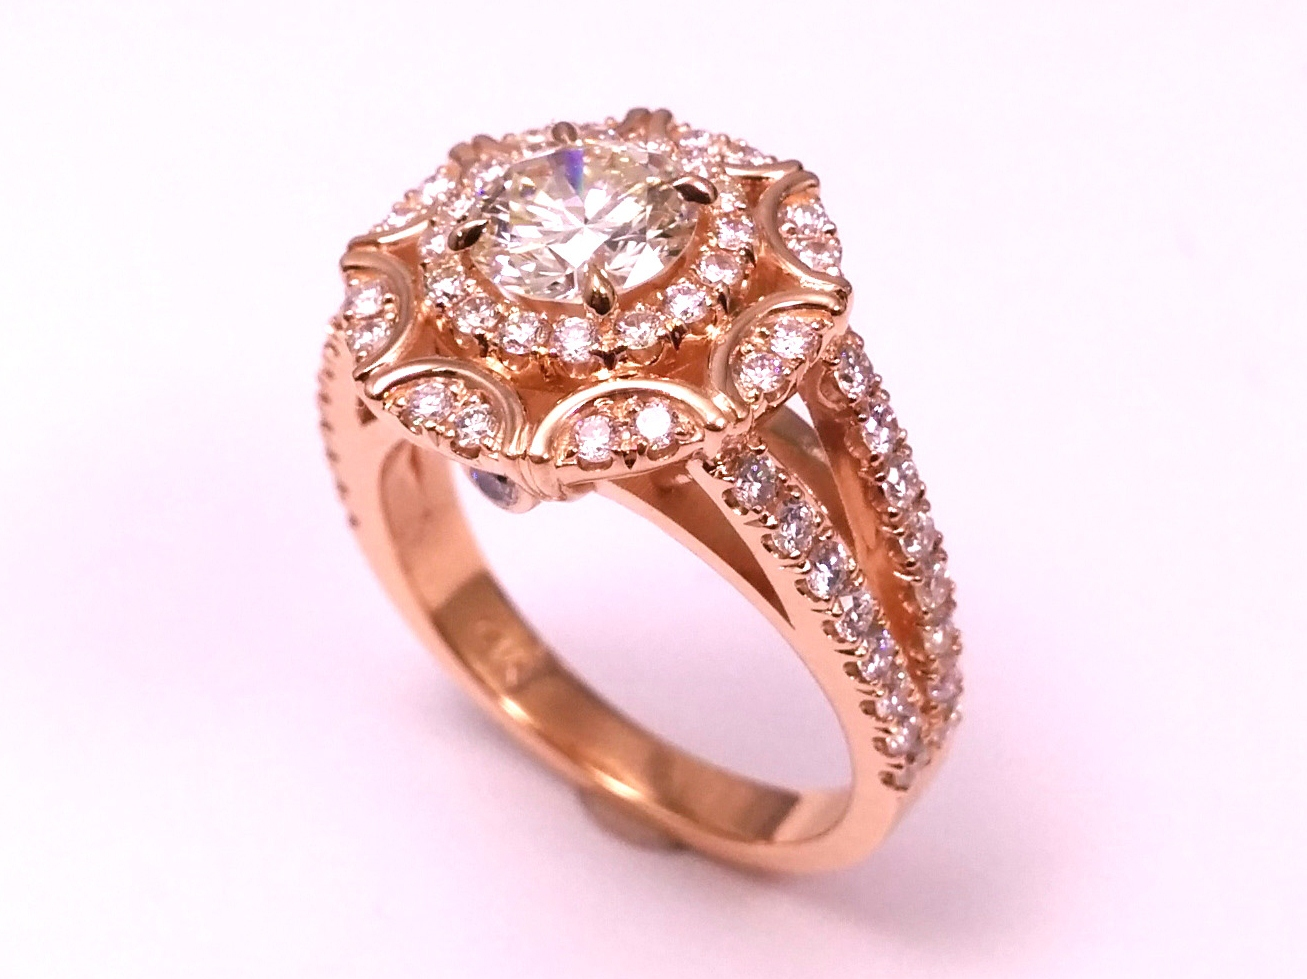 split-band - Engagement Rings from MDC Diamonds NYC